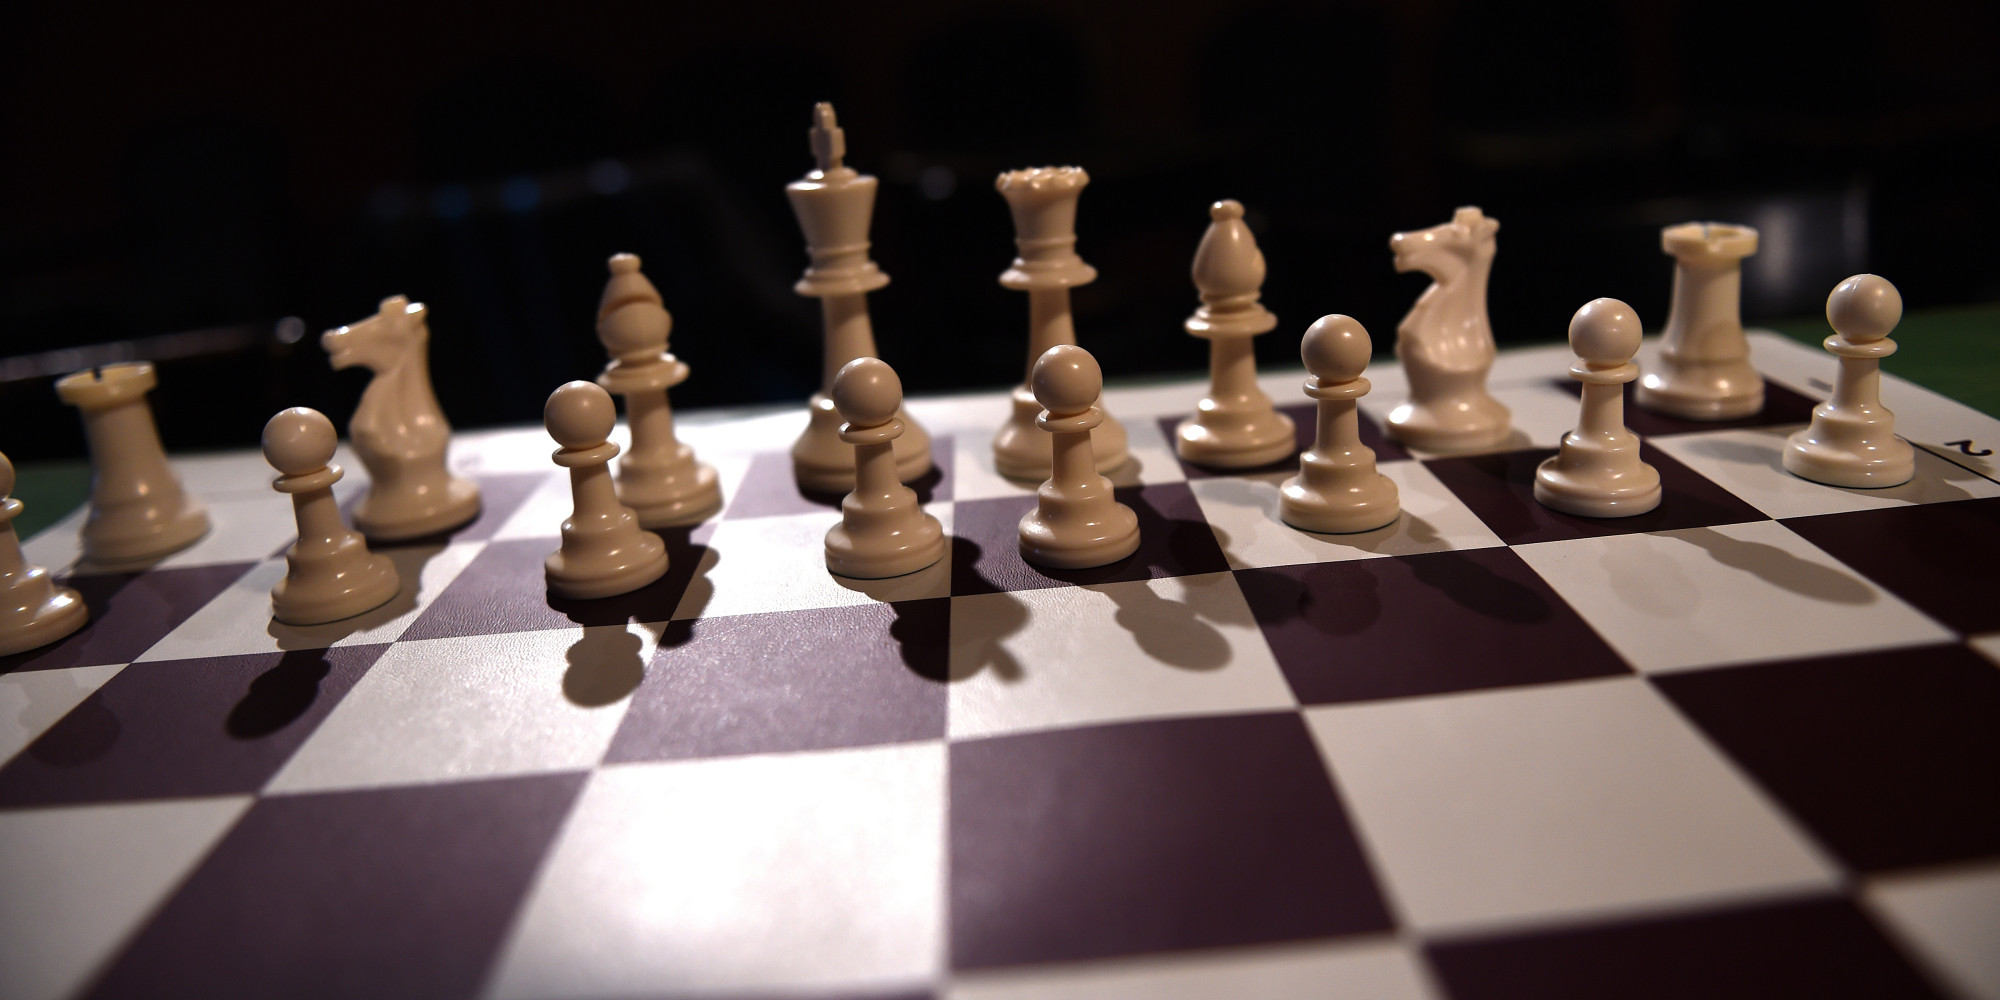 Every Chess Game Tells a Story | HuffPost